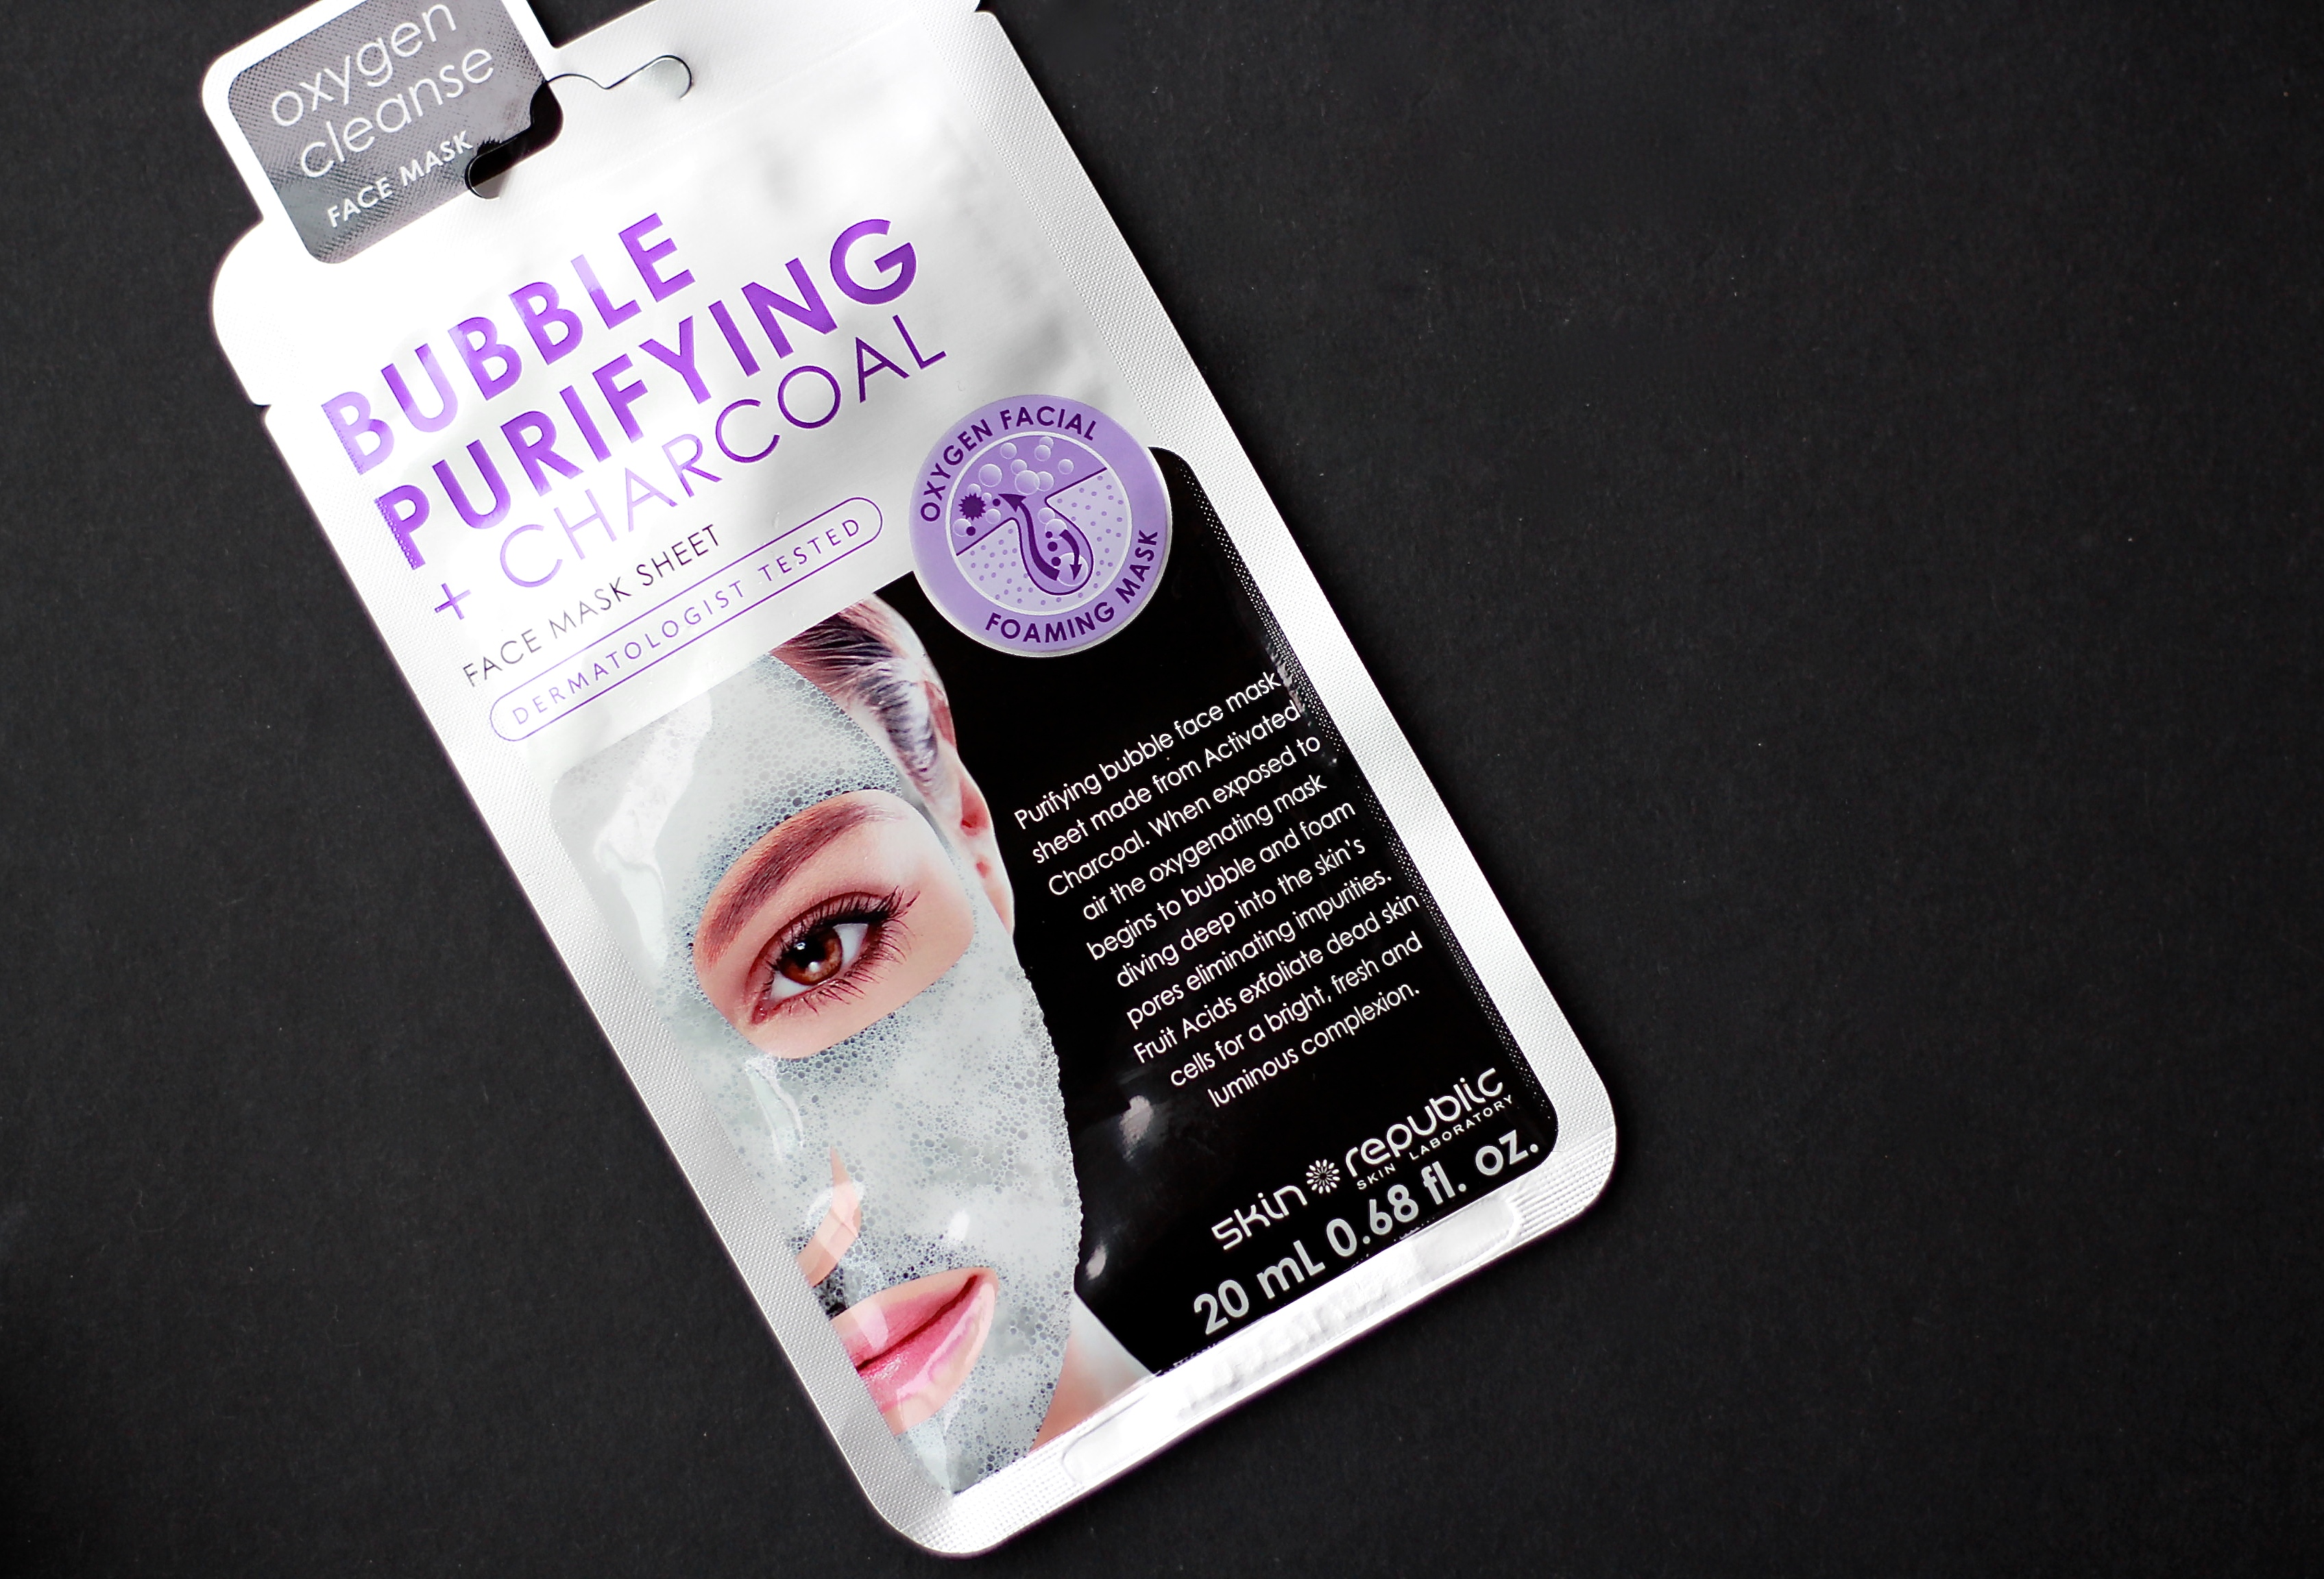 SKIN REPUBLIC Bubble Purifying + Charcoal Face Mask